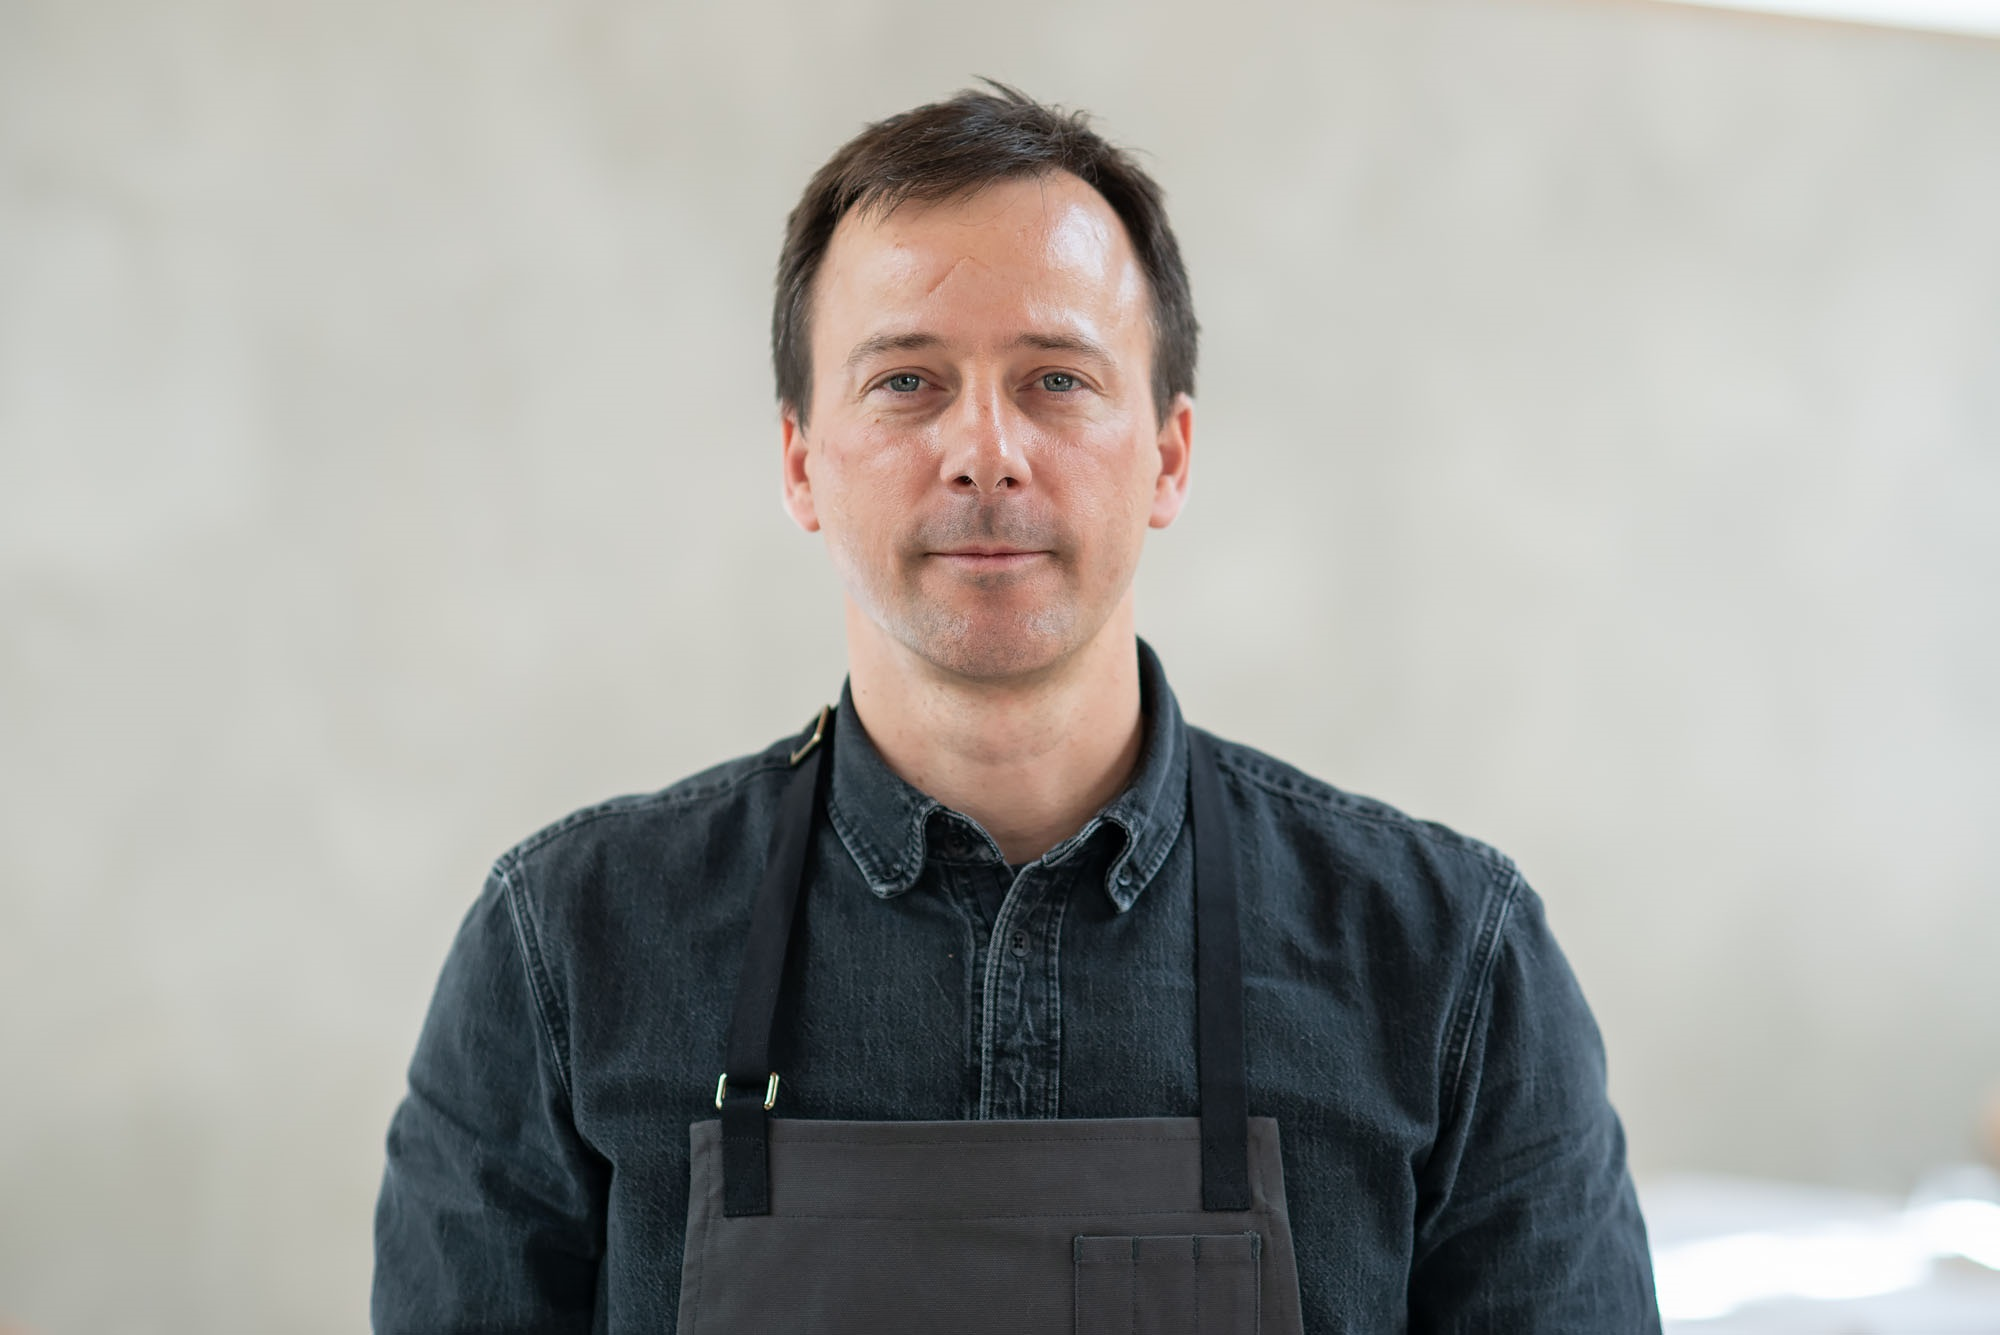 Close up profile shot of Eric Bost wearing dark chef's coat and apron.